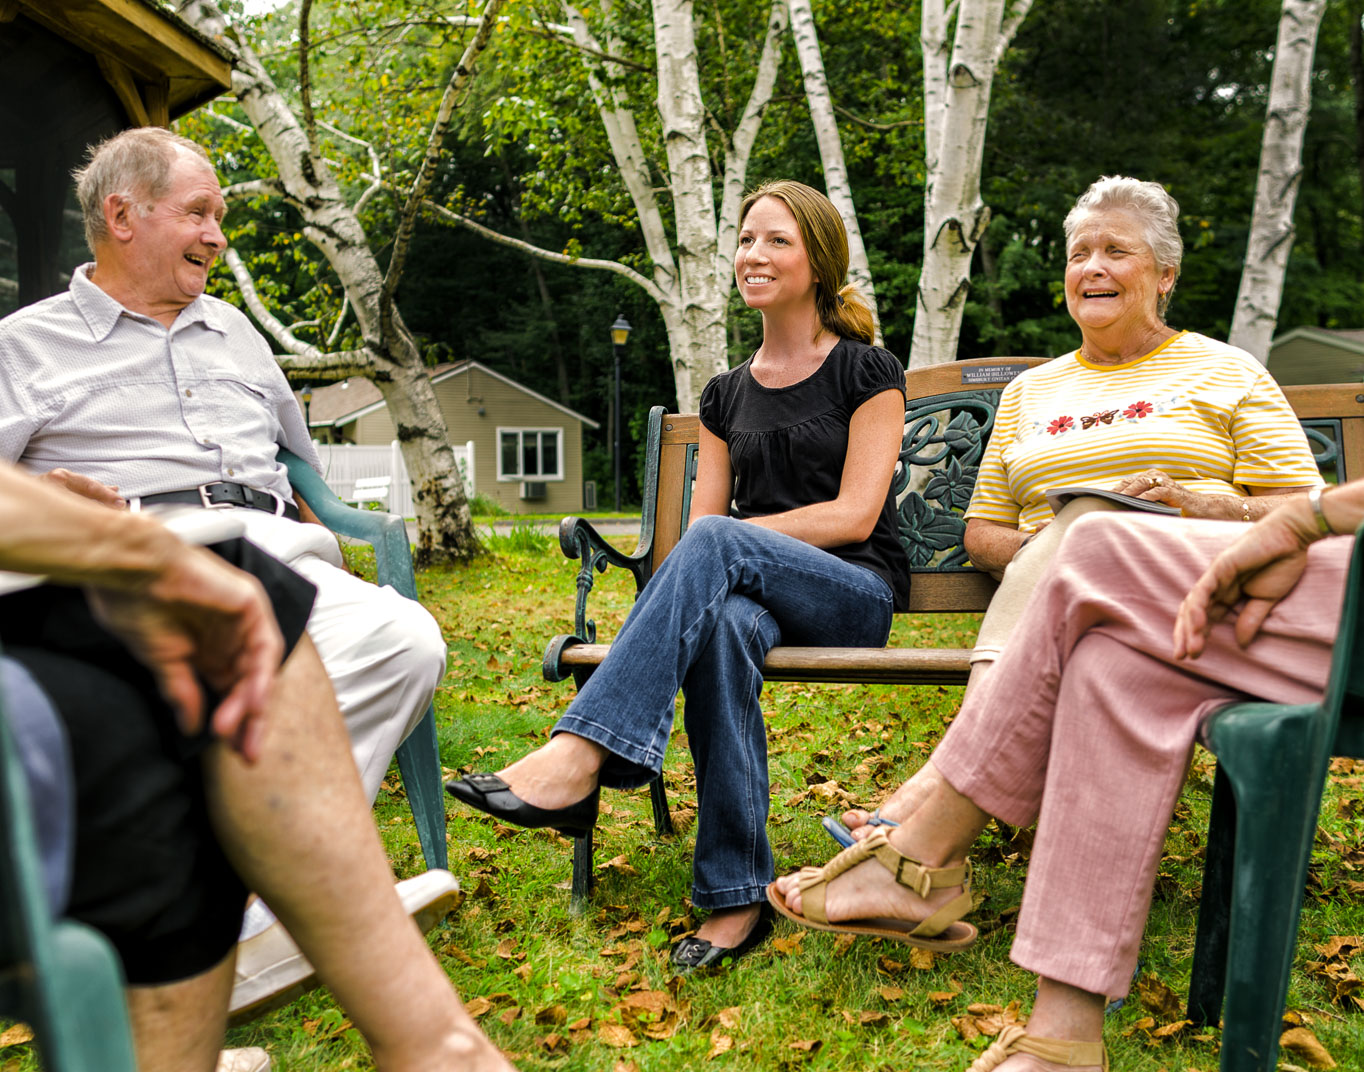 Young Connecticut woman with Multiple Sclerosis sits on park bench with friends in retirement community surrounded by birch trees